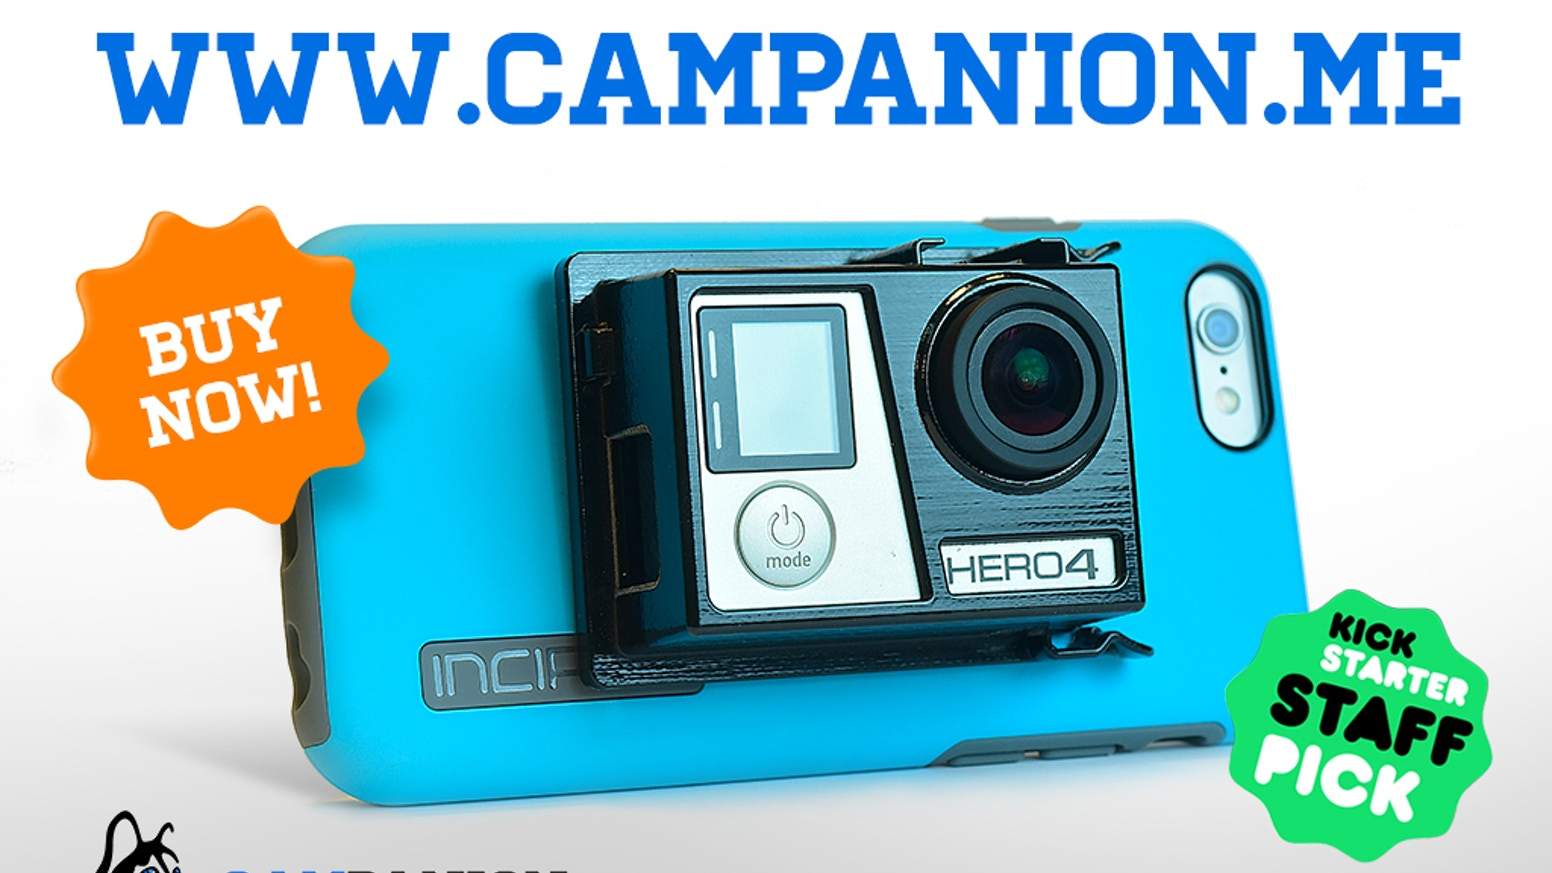 Missed our Kickstarter campaign?  Get your CAMpanion at www.campanion.me